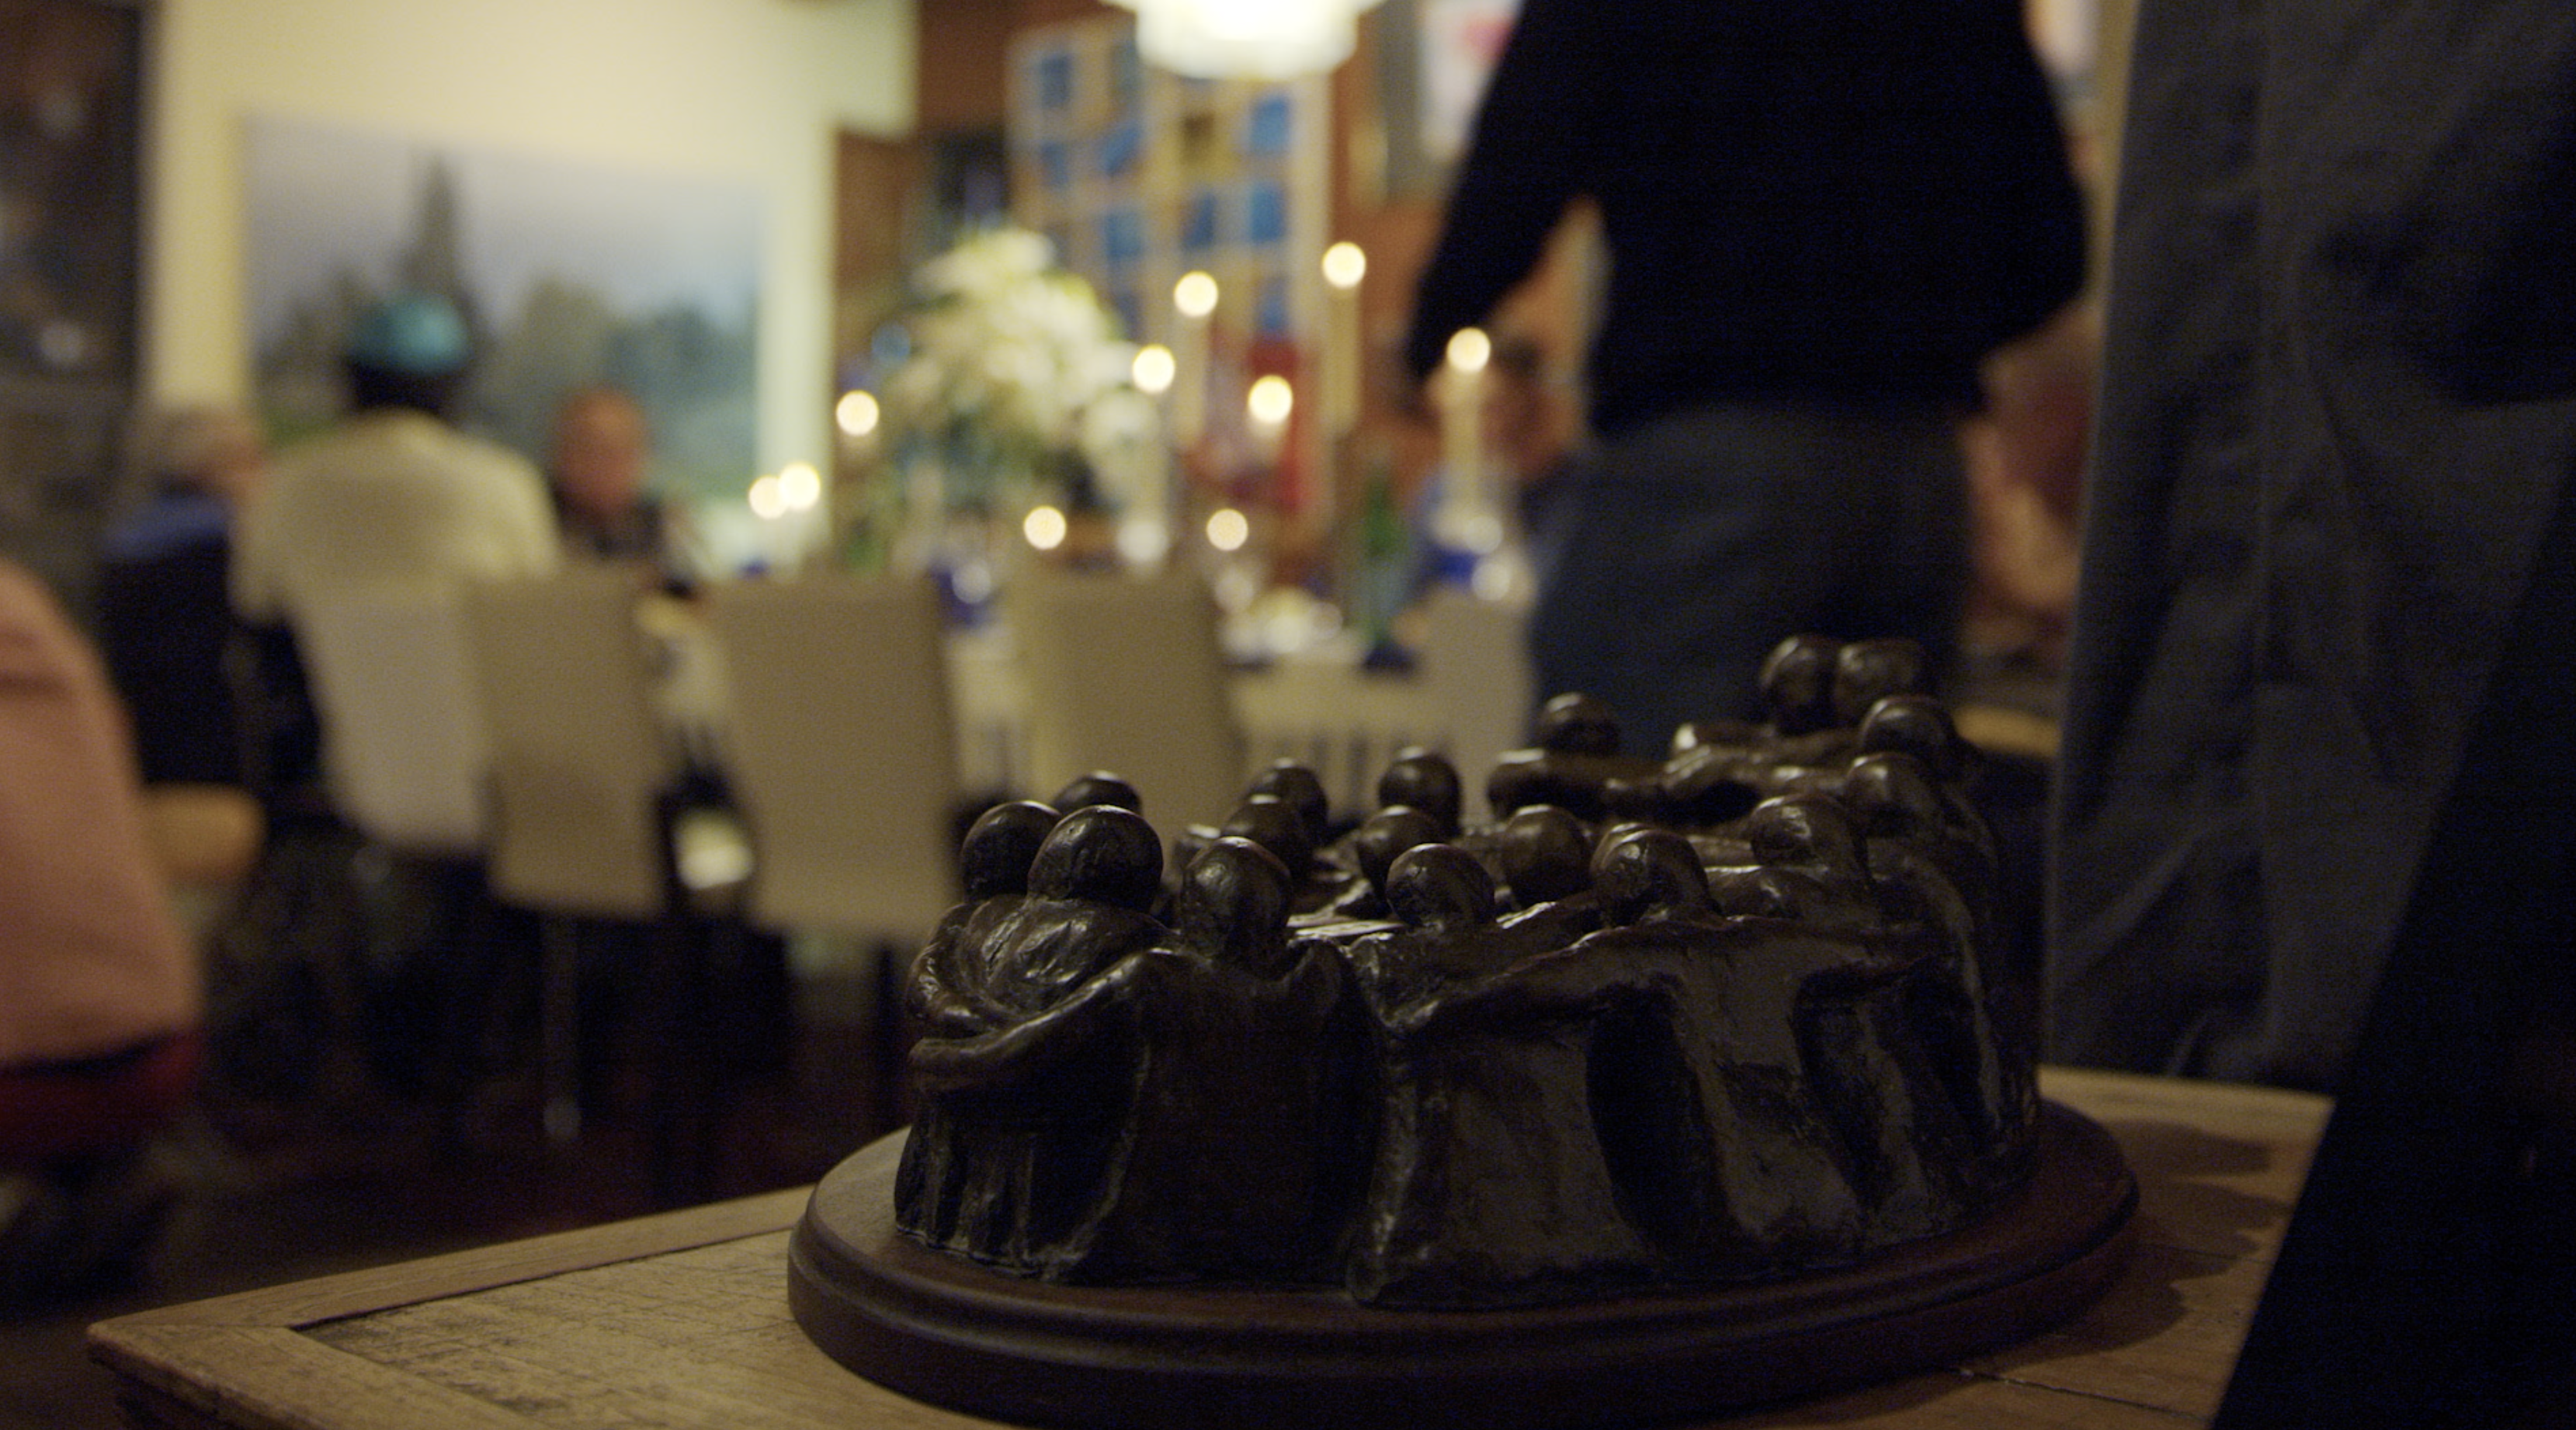 This sculpture by Trudy's husband Irving, symbolizing family and togetherness, is in every one of the Lehrer's homes.